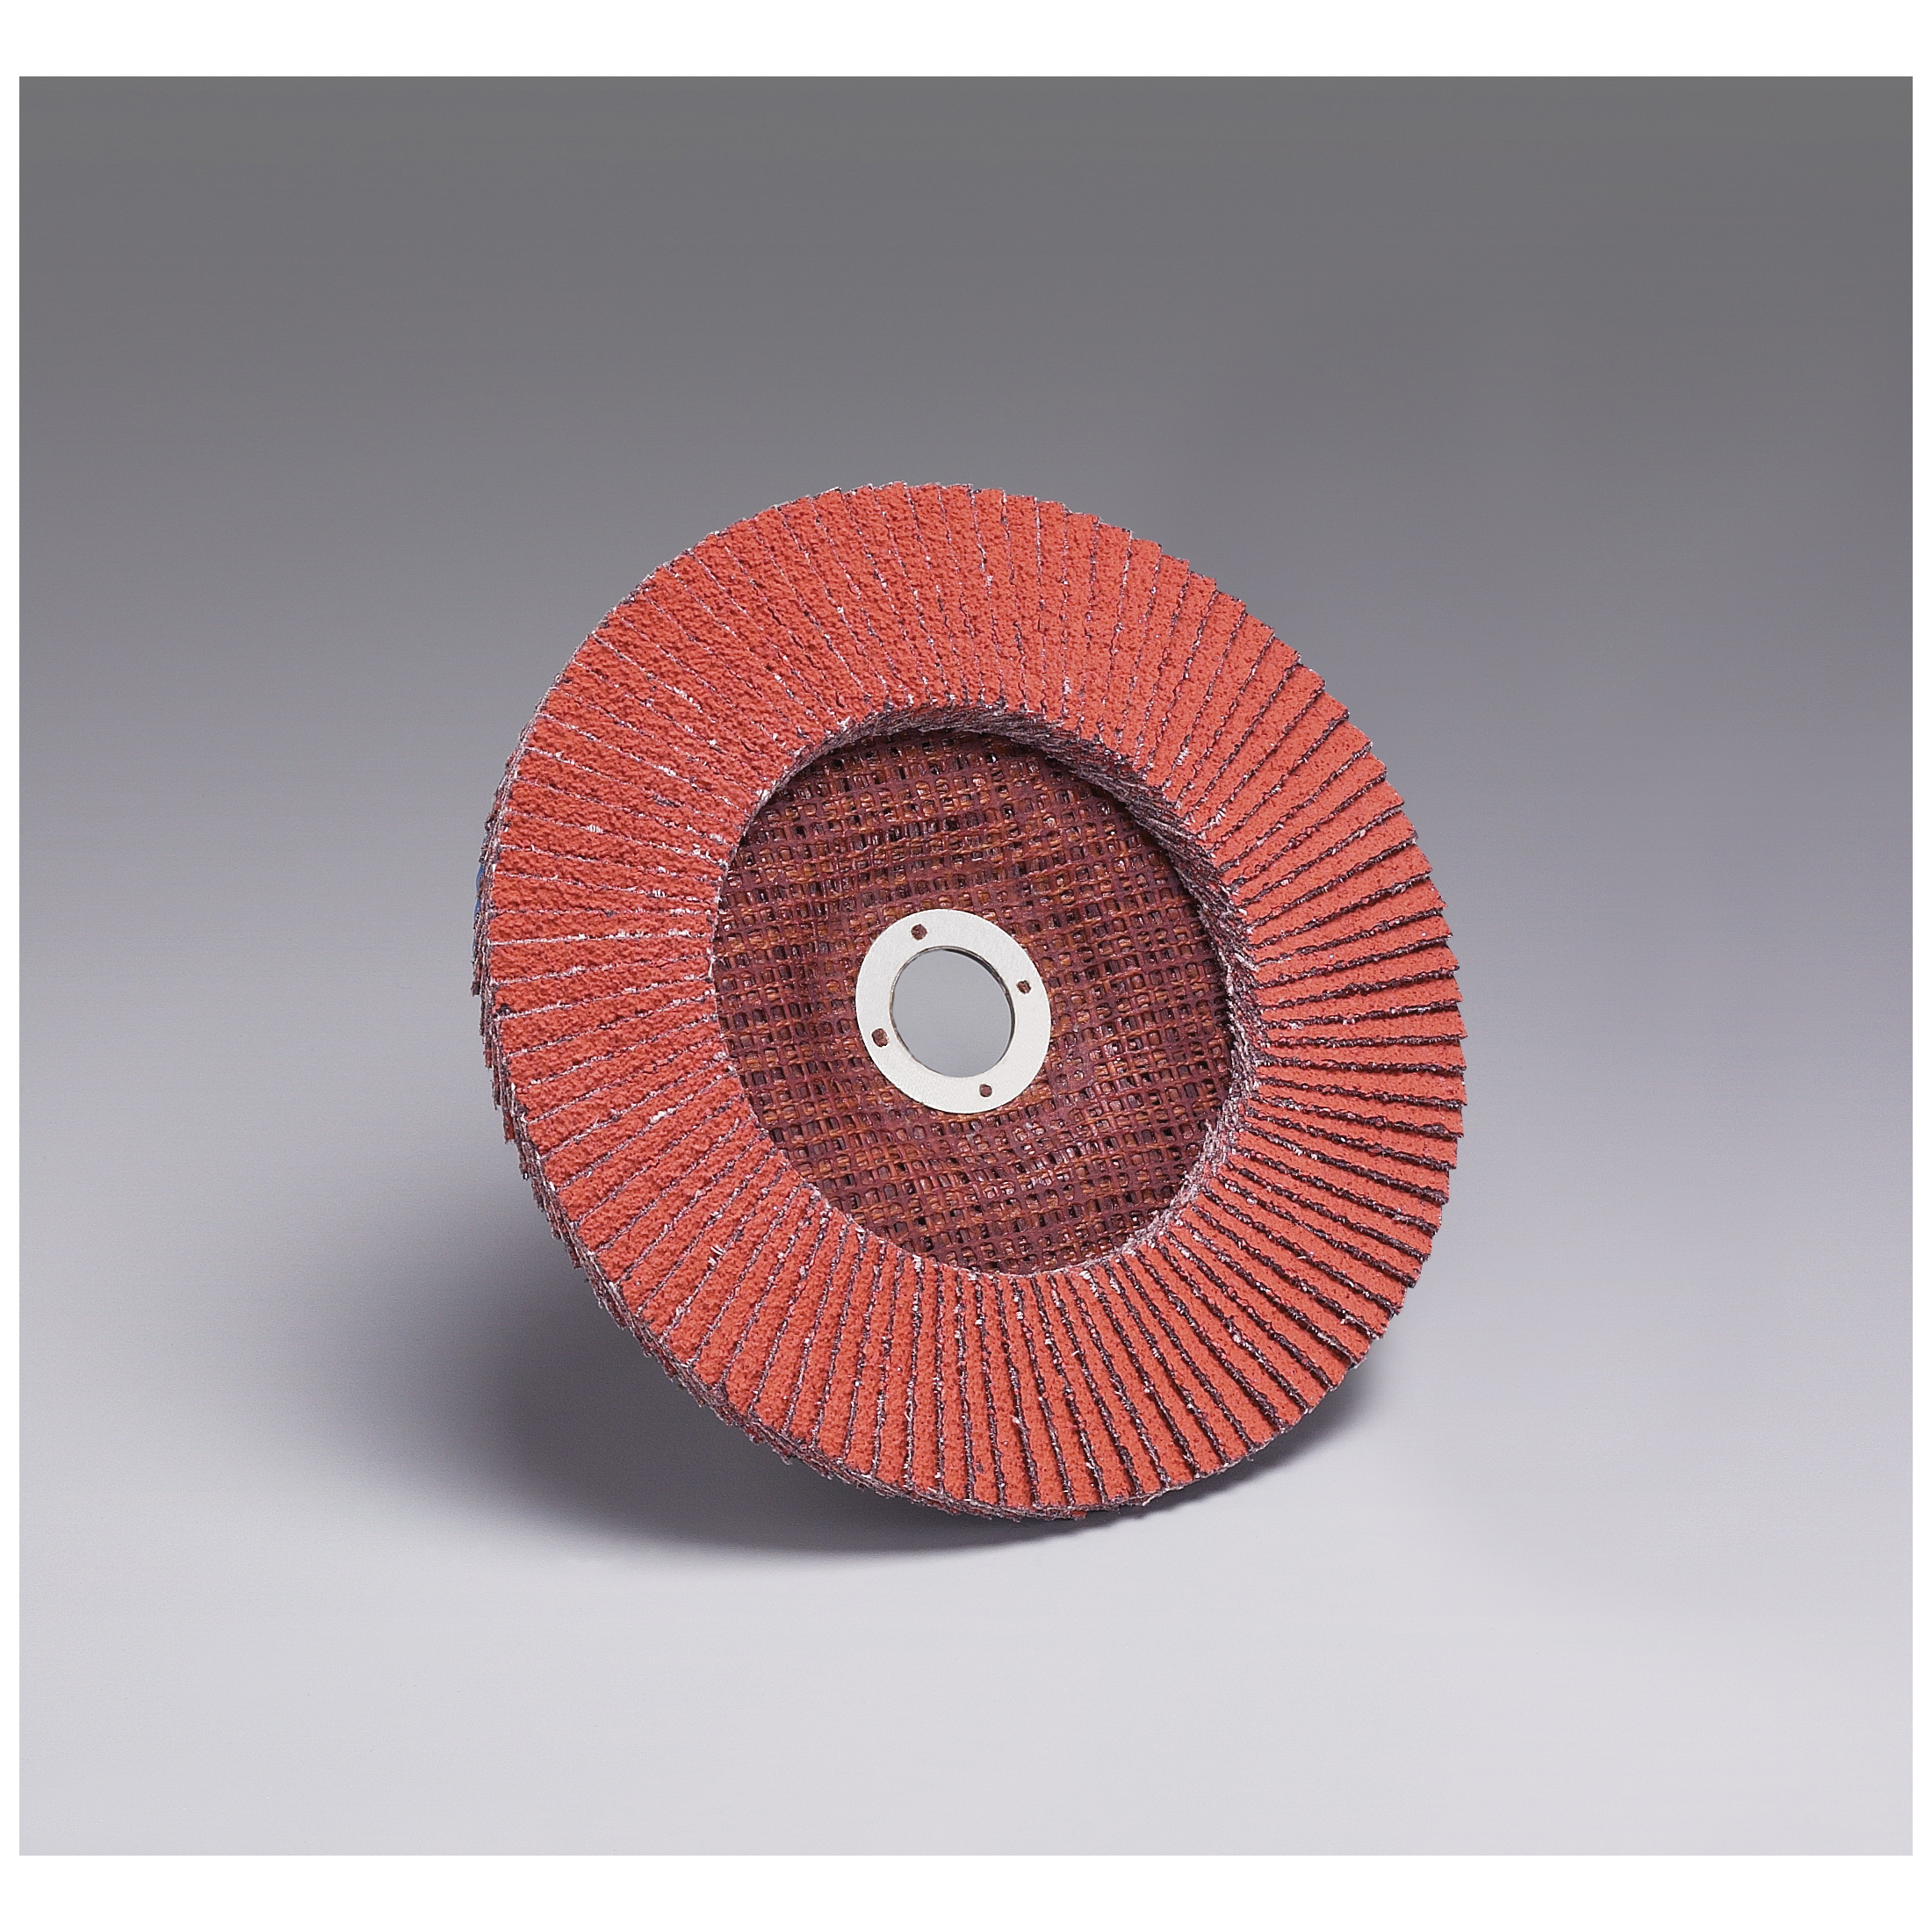 3M™ 051111-61197 Close Coated Abrasive Flap Disc, 7 in Dia, 7/8 in Center Hole, 80 Grit, Medium Grade, Ceramic Abrasive, Type 27 Disc